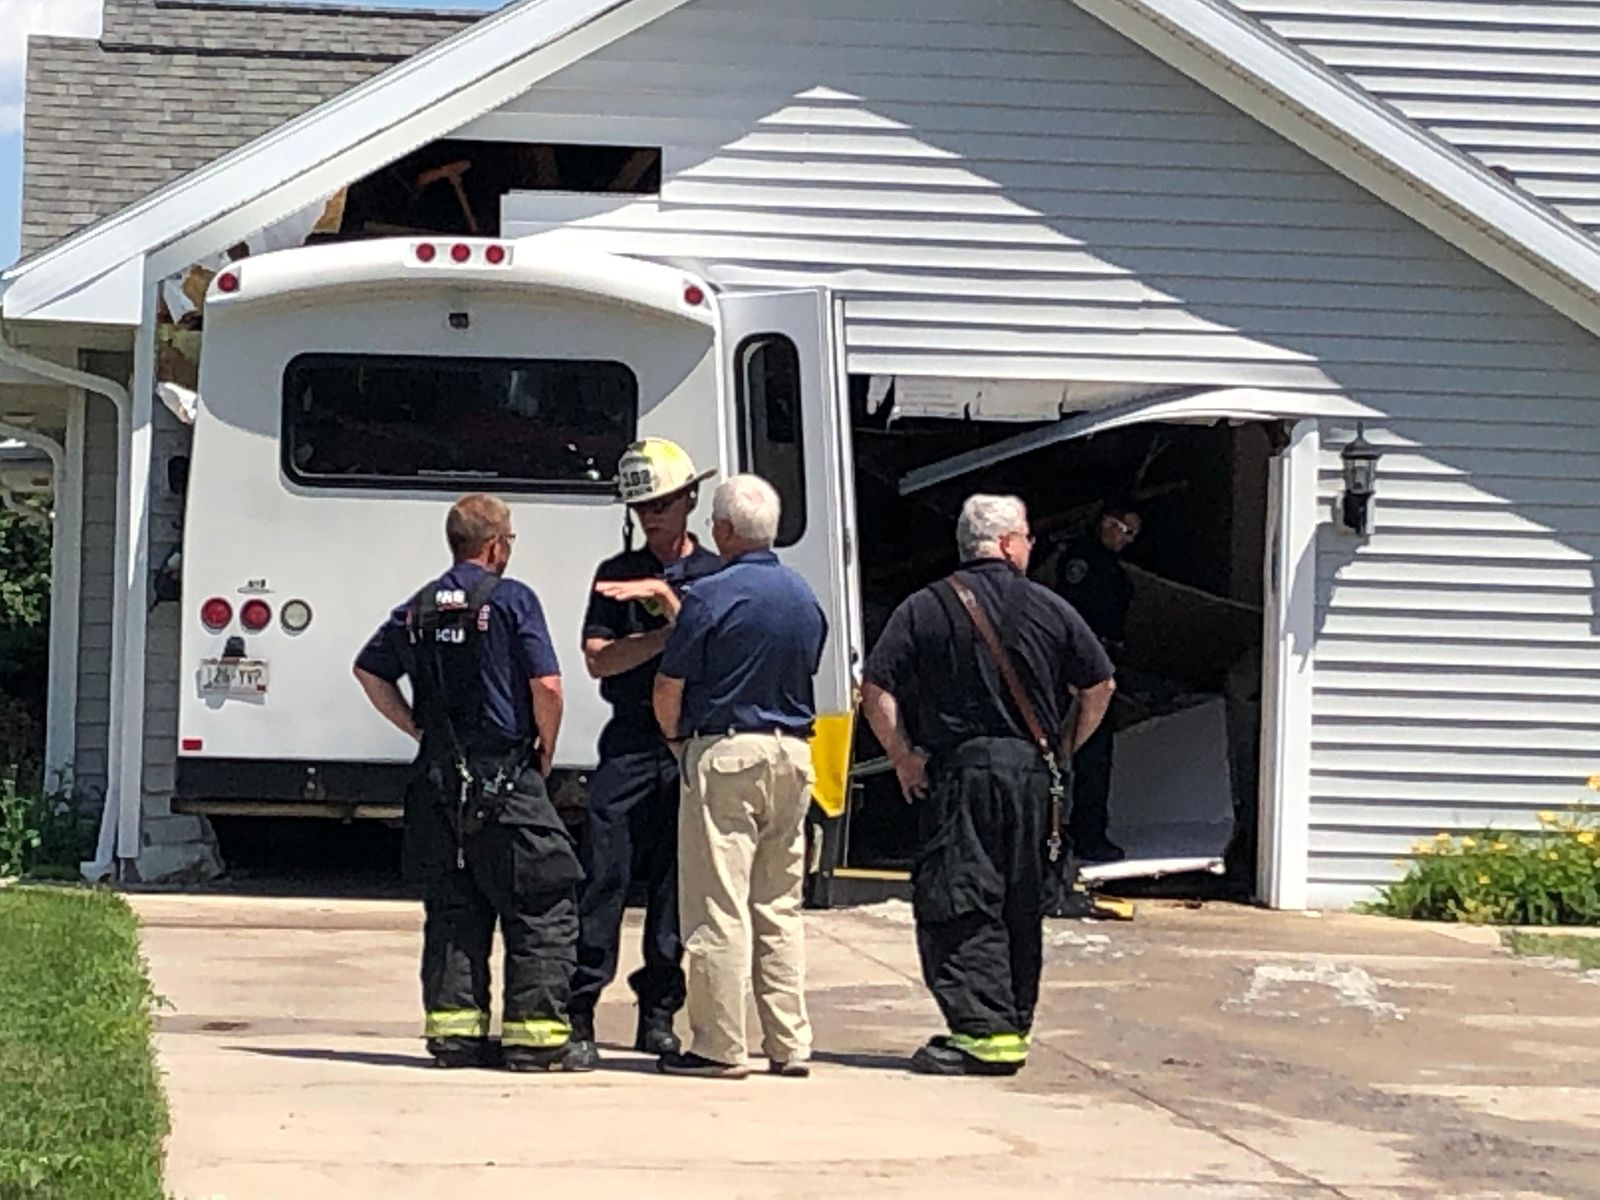 Firefighters investigate as a van is wedged into the garage of a building in De Pere July 10, 2019. (WLUK/Jessie Basinski)